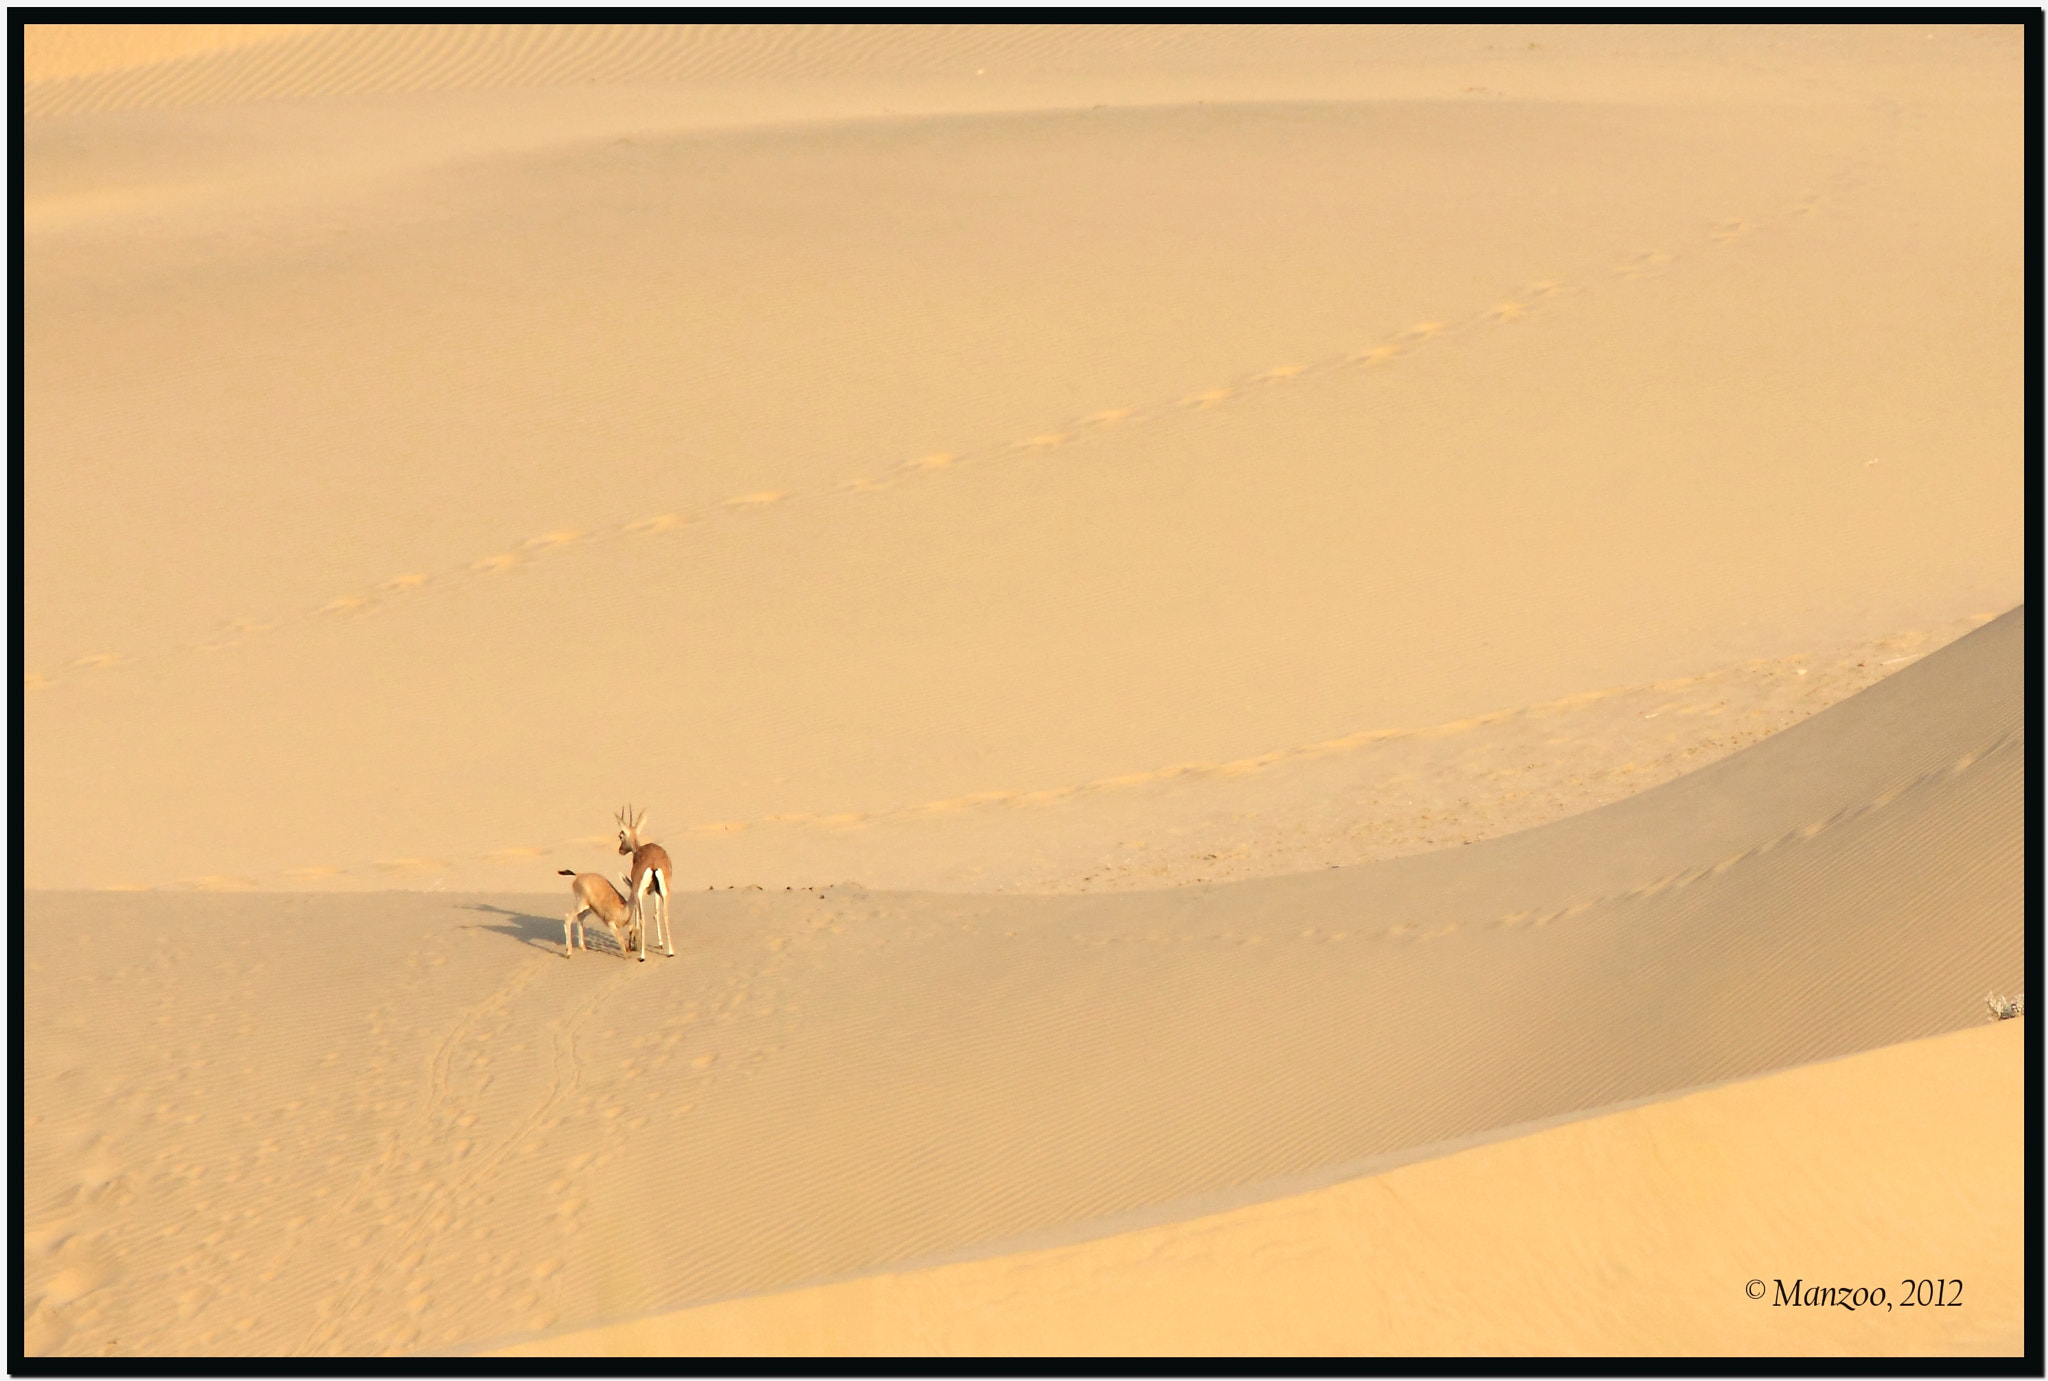 Photograph Snack time in the desert by Manjunath Undi on 500px